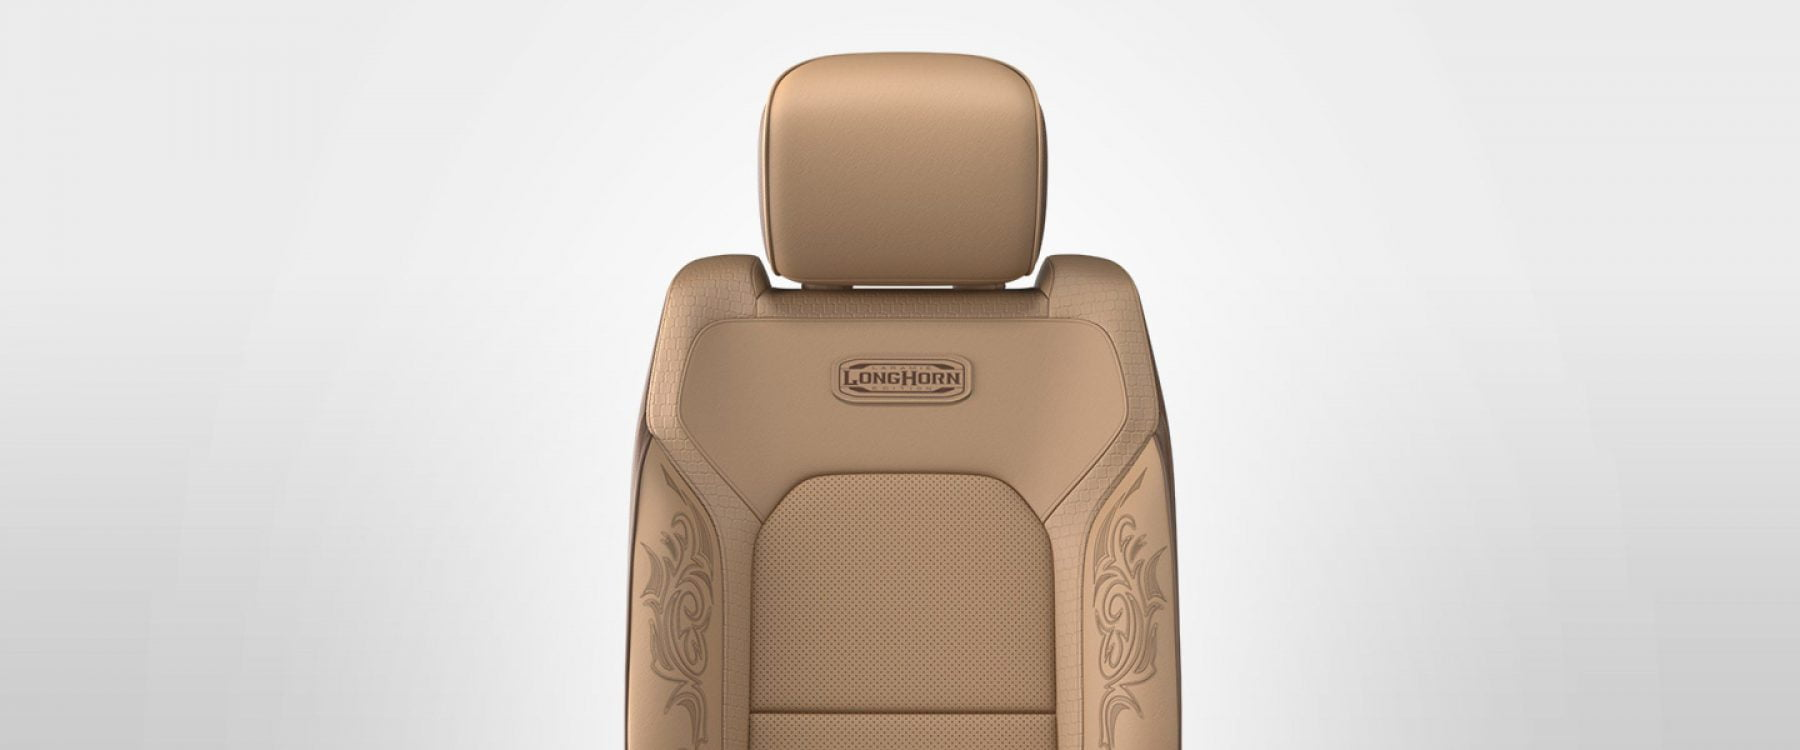 2019 Ram 1500 Interior Seat Longhorn Natura plus filigree leather